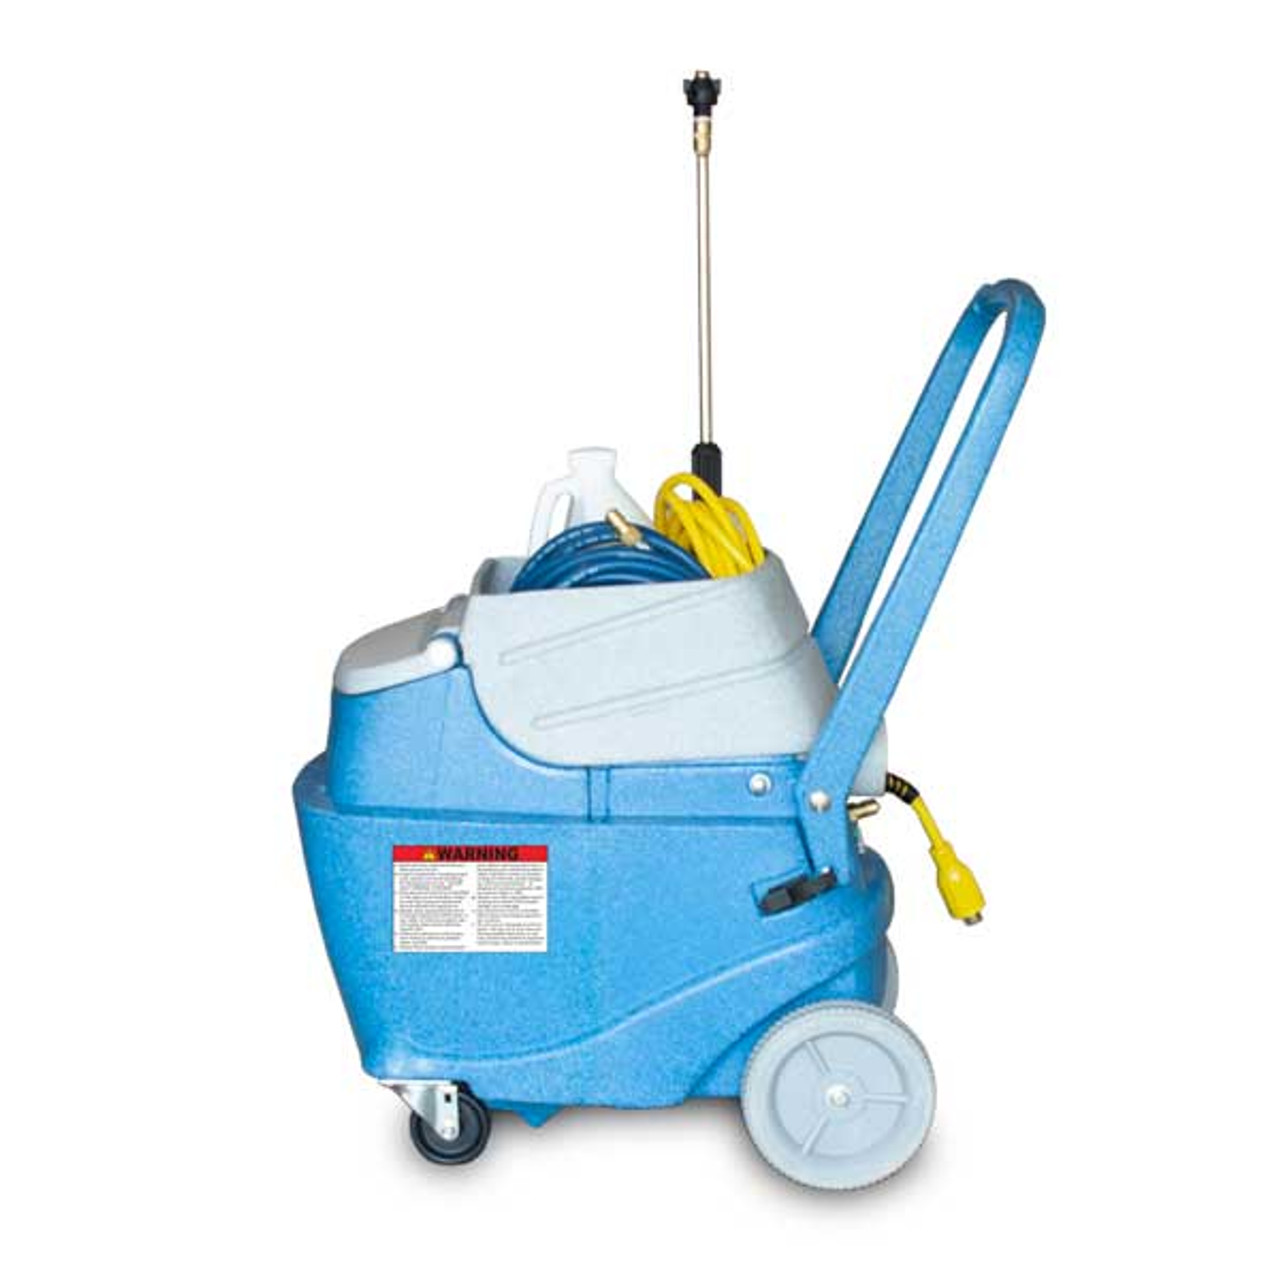 The 220 psi solution pump and 5 gallon capacity greatly increase productivity so you can get the job done quickly.